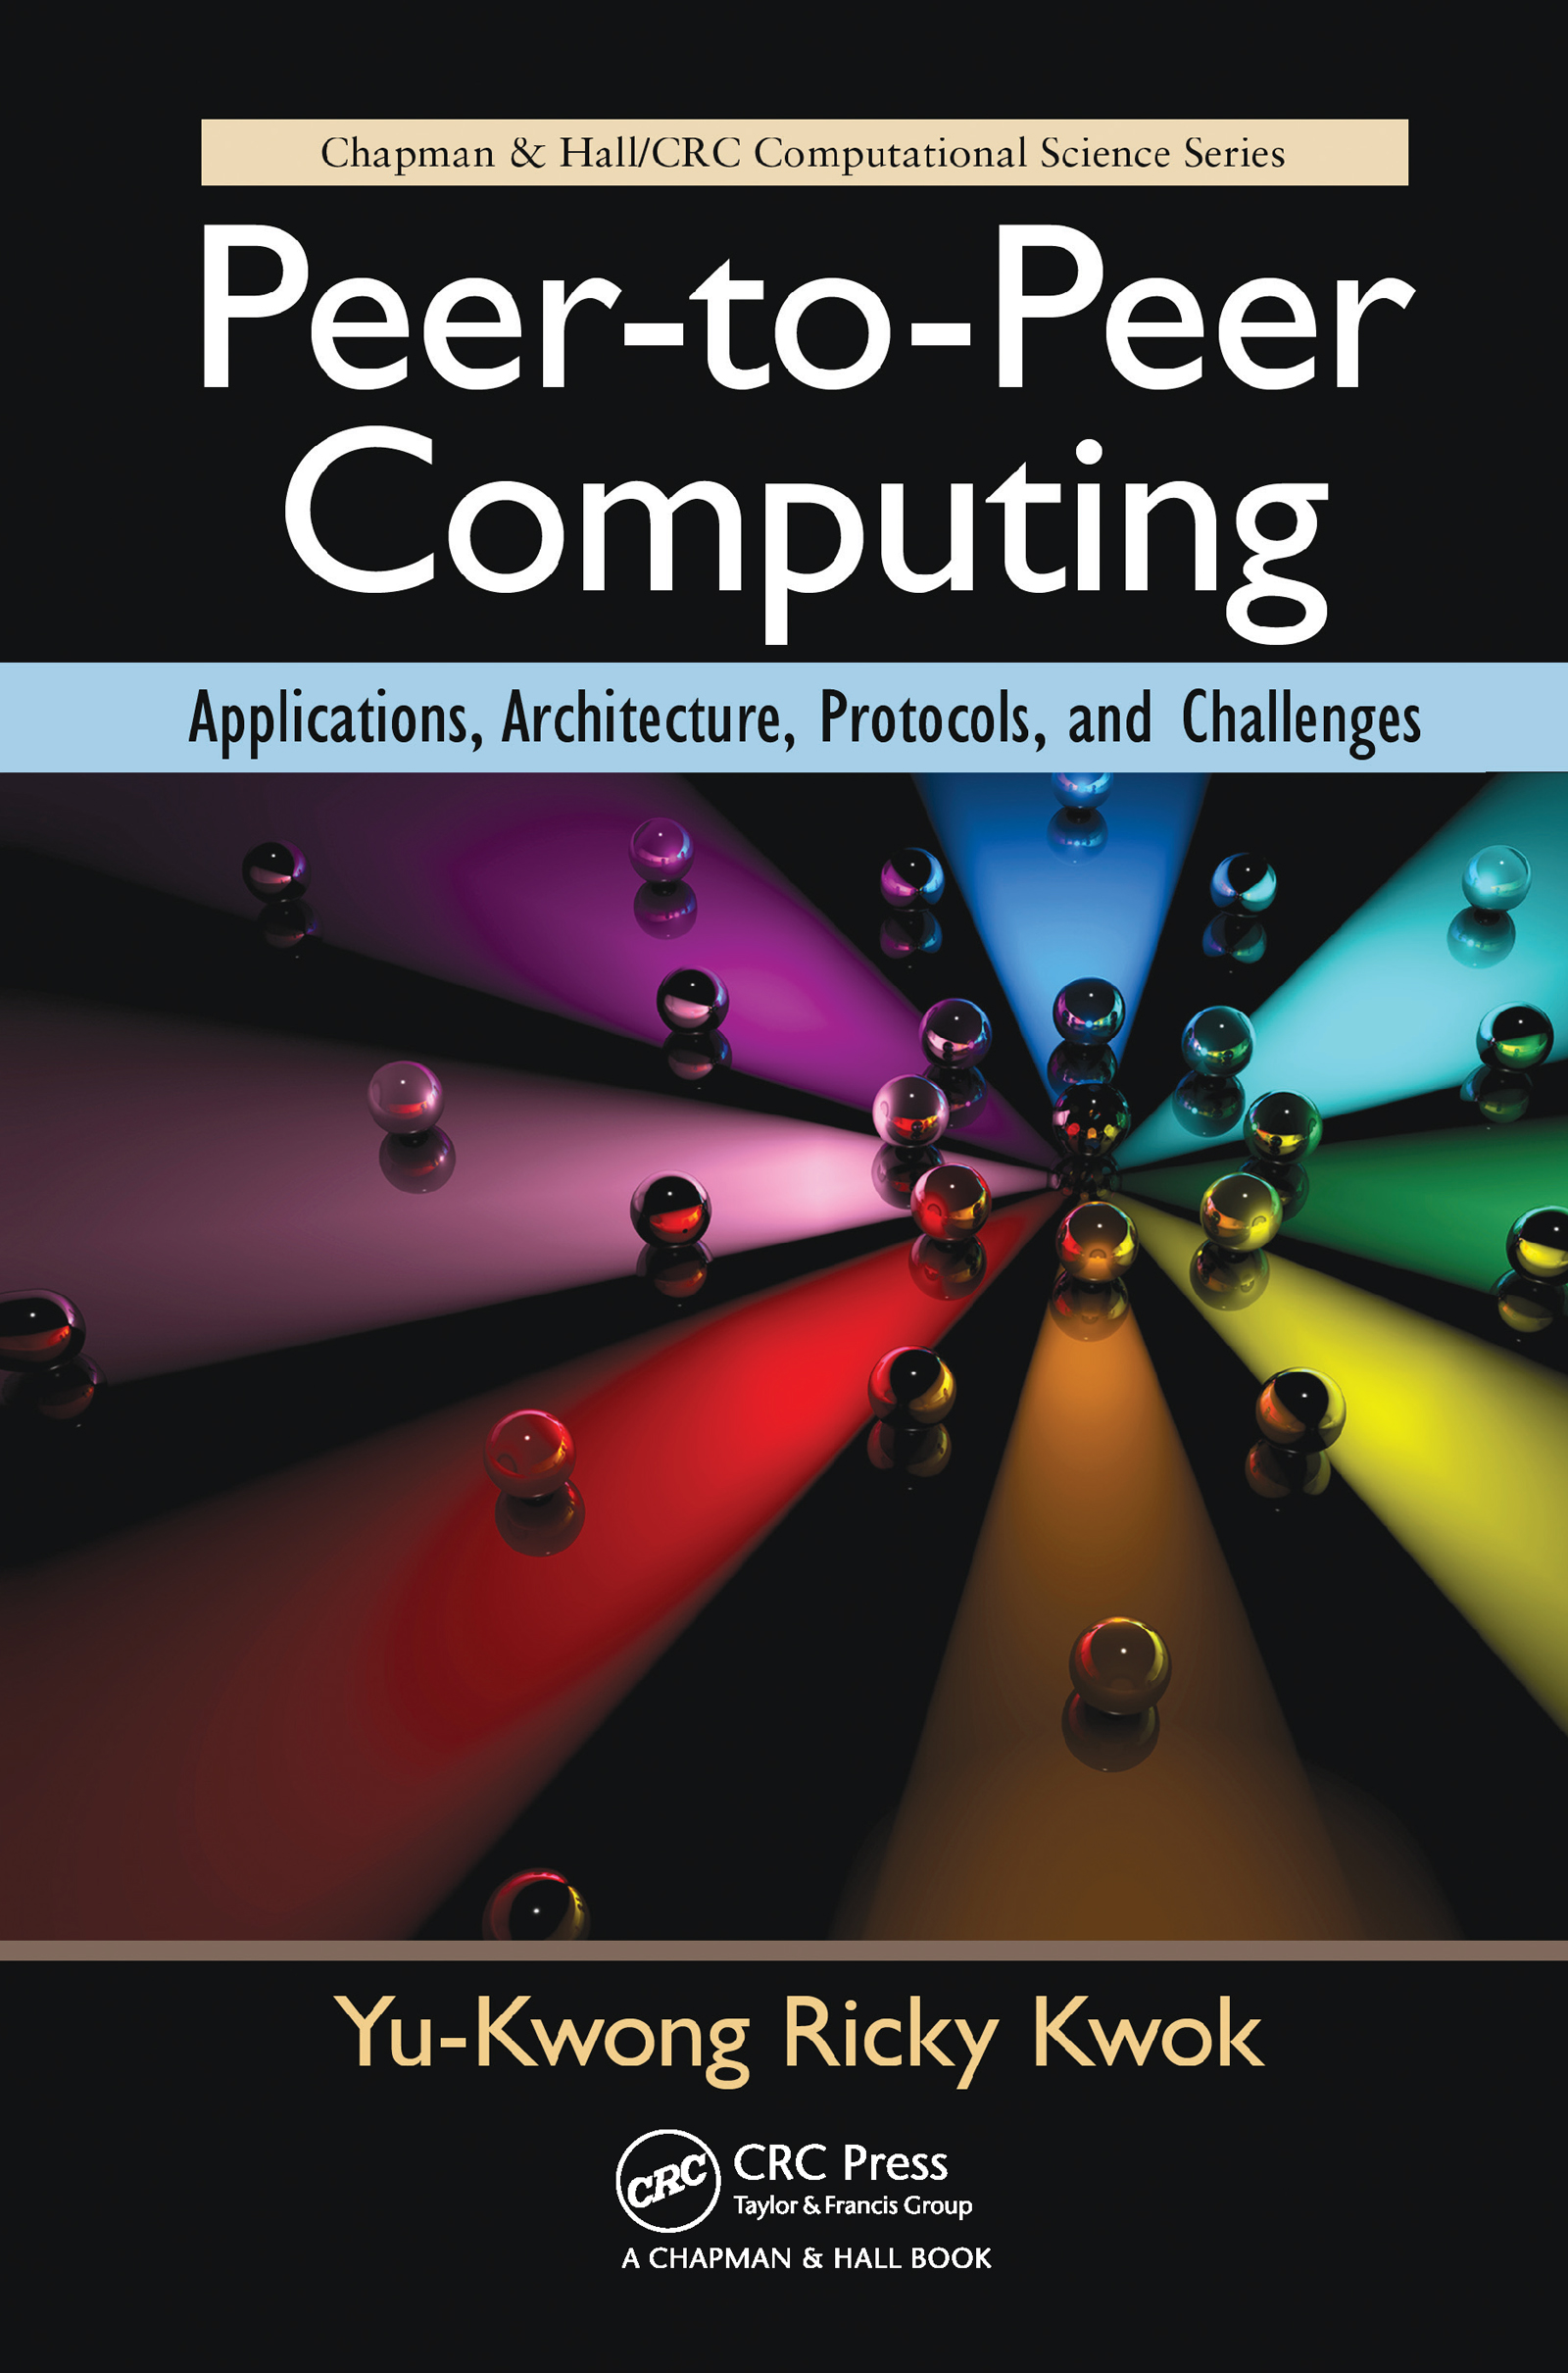 Peer-to-Peer Computing: Applications, Architecture, Protocols, and Challenges book cover